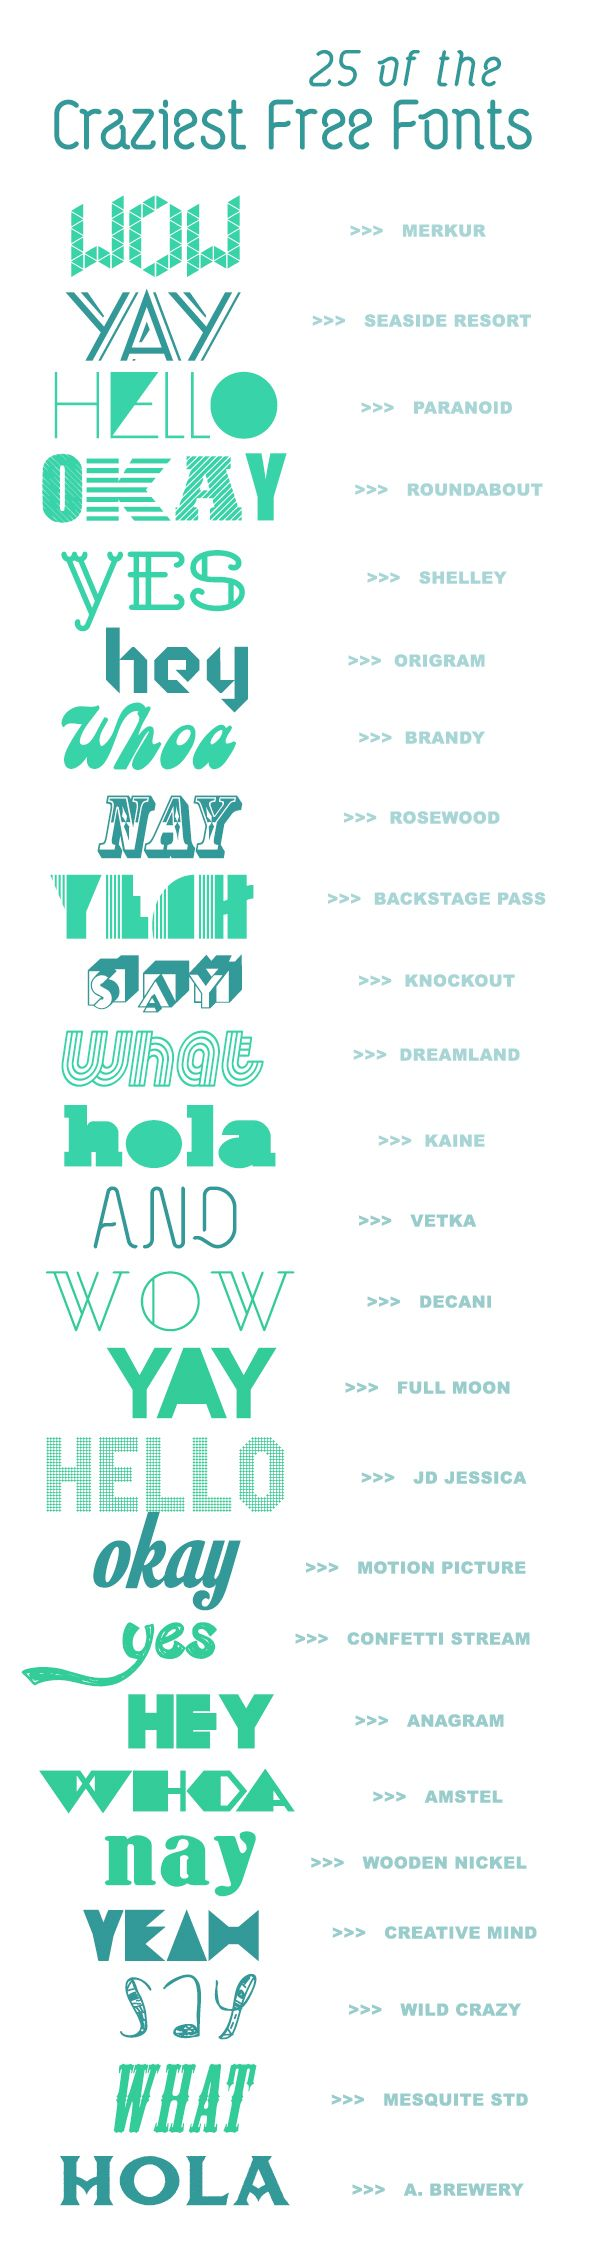 25 crazy creative fonts | a subtle revelry